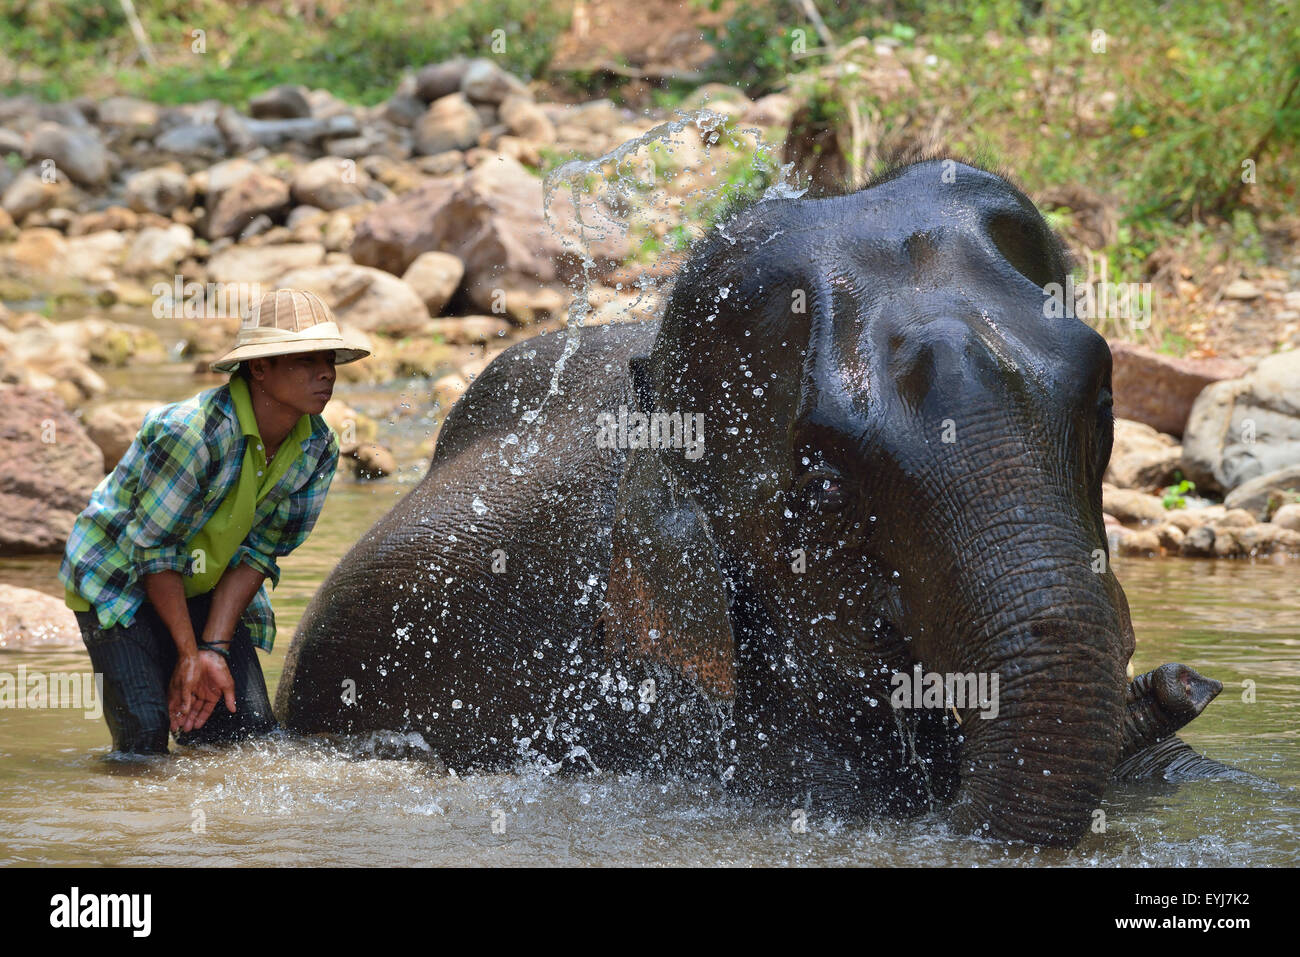 Mahout bathing a rescued logging elephant   in the stream  at the Green Hill Valley Elephant Camp Kalaw, Myanmar - Stock Image